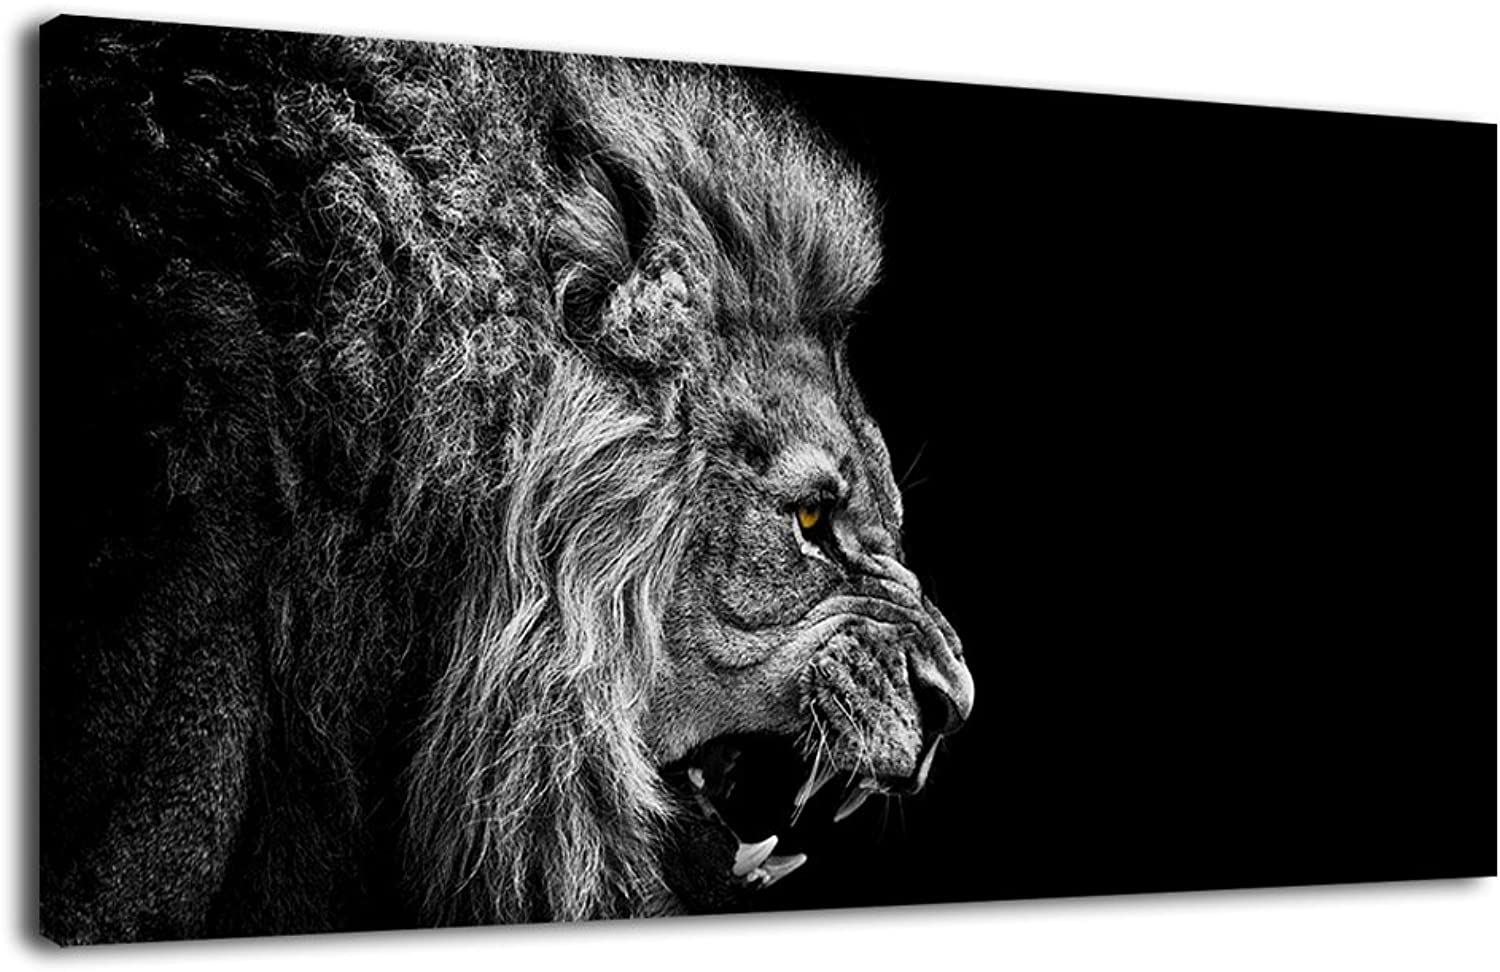 ArteWOODS Canvas Wall Art Lion Painting Modern Large Panoramic Canvas Prints Artwork Contemporary Pictures Black and White Lion for Kitchen Office Home Decoration 20  x 40